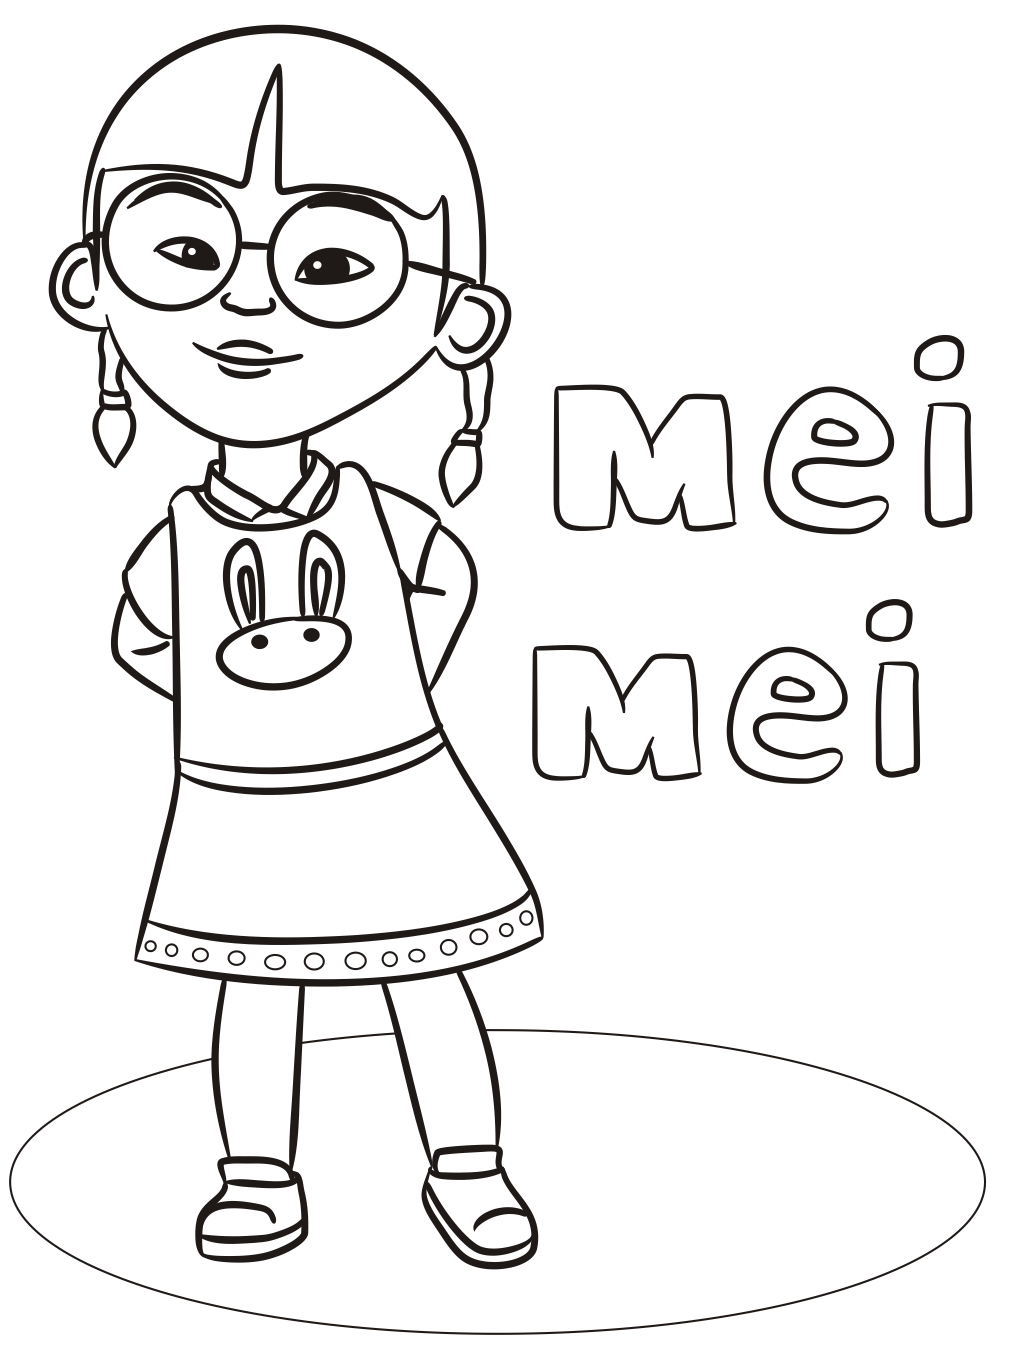 Mei Upin Ipin Coloring Pages